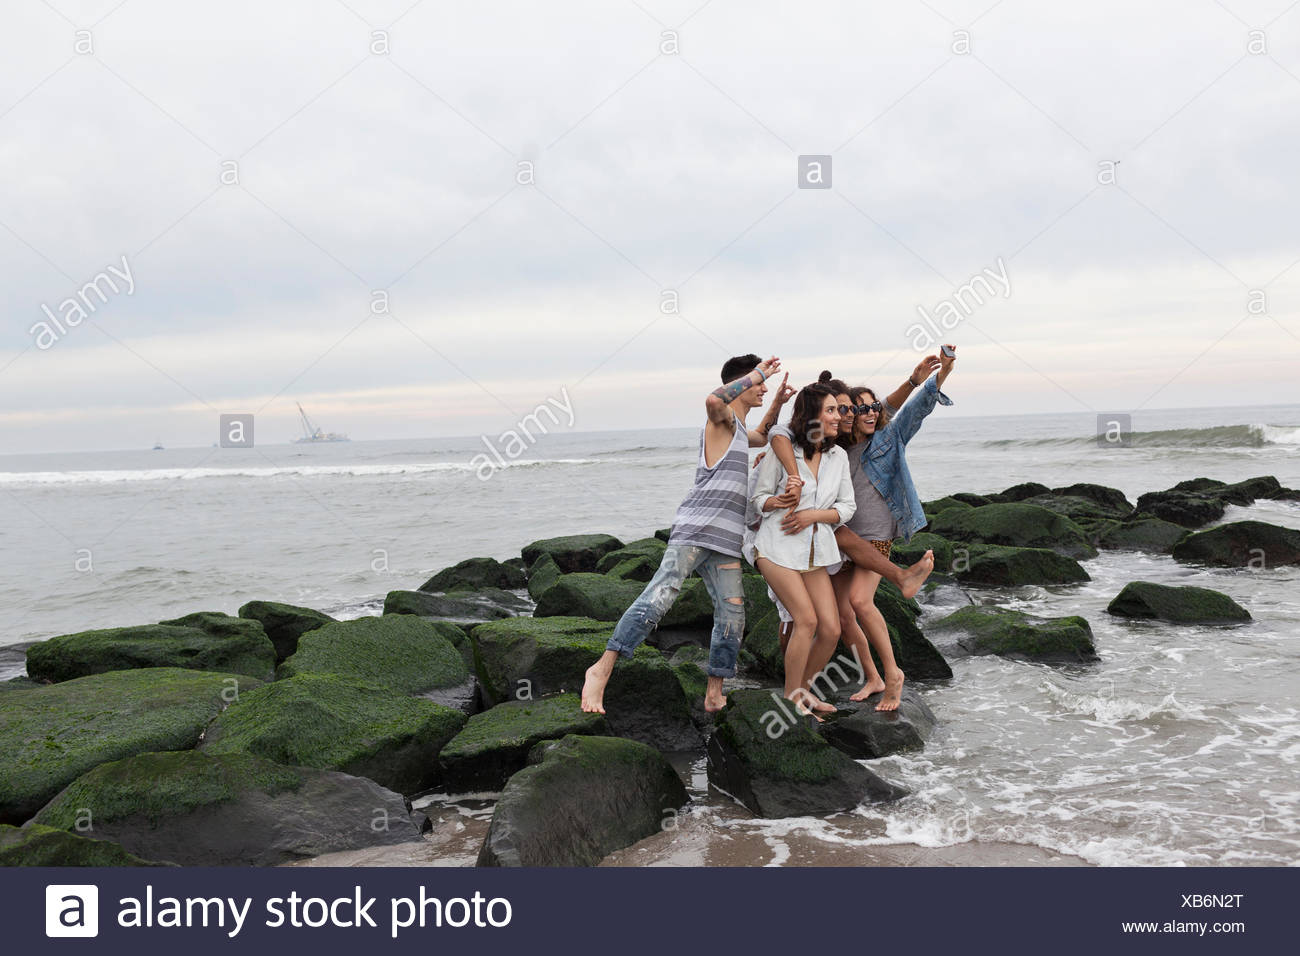 Friends posing for a selfie on the beach - Stock Image